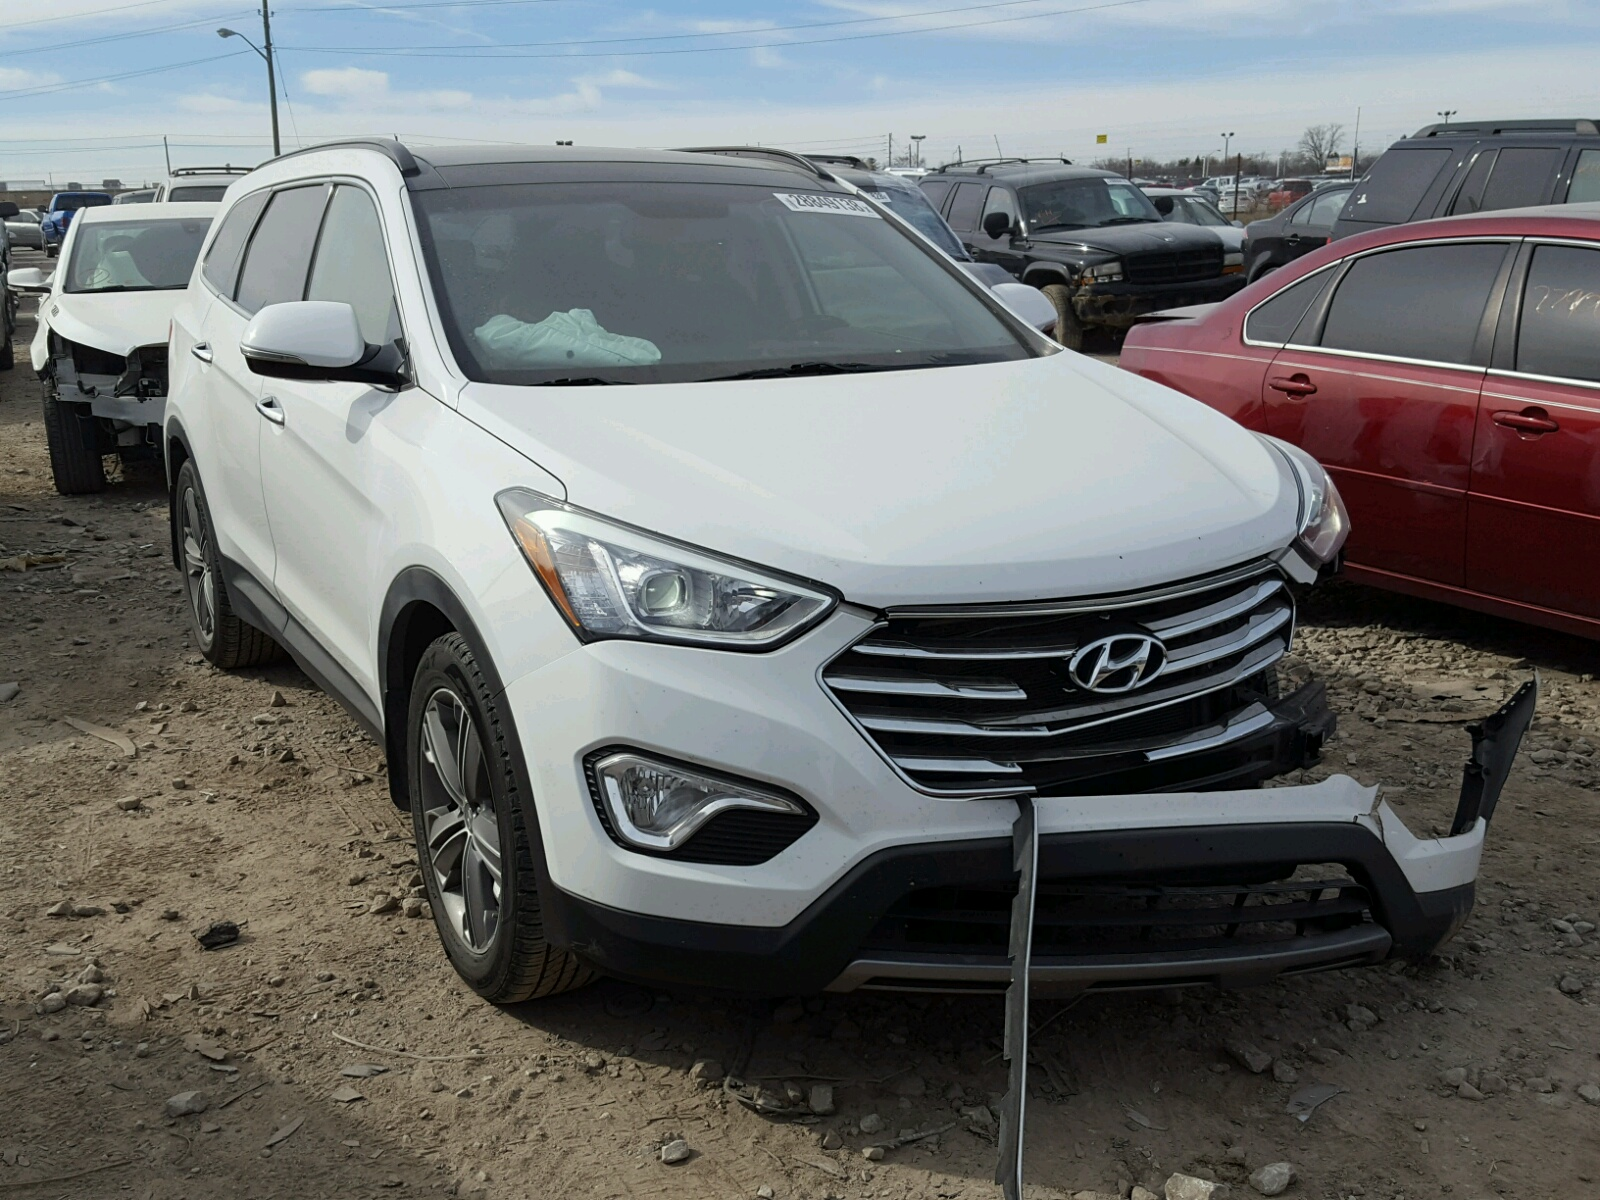 gurdian skillman indianapolis and our david west ray a dealer staff is new meet hyundai